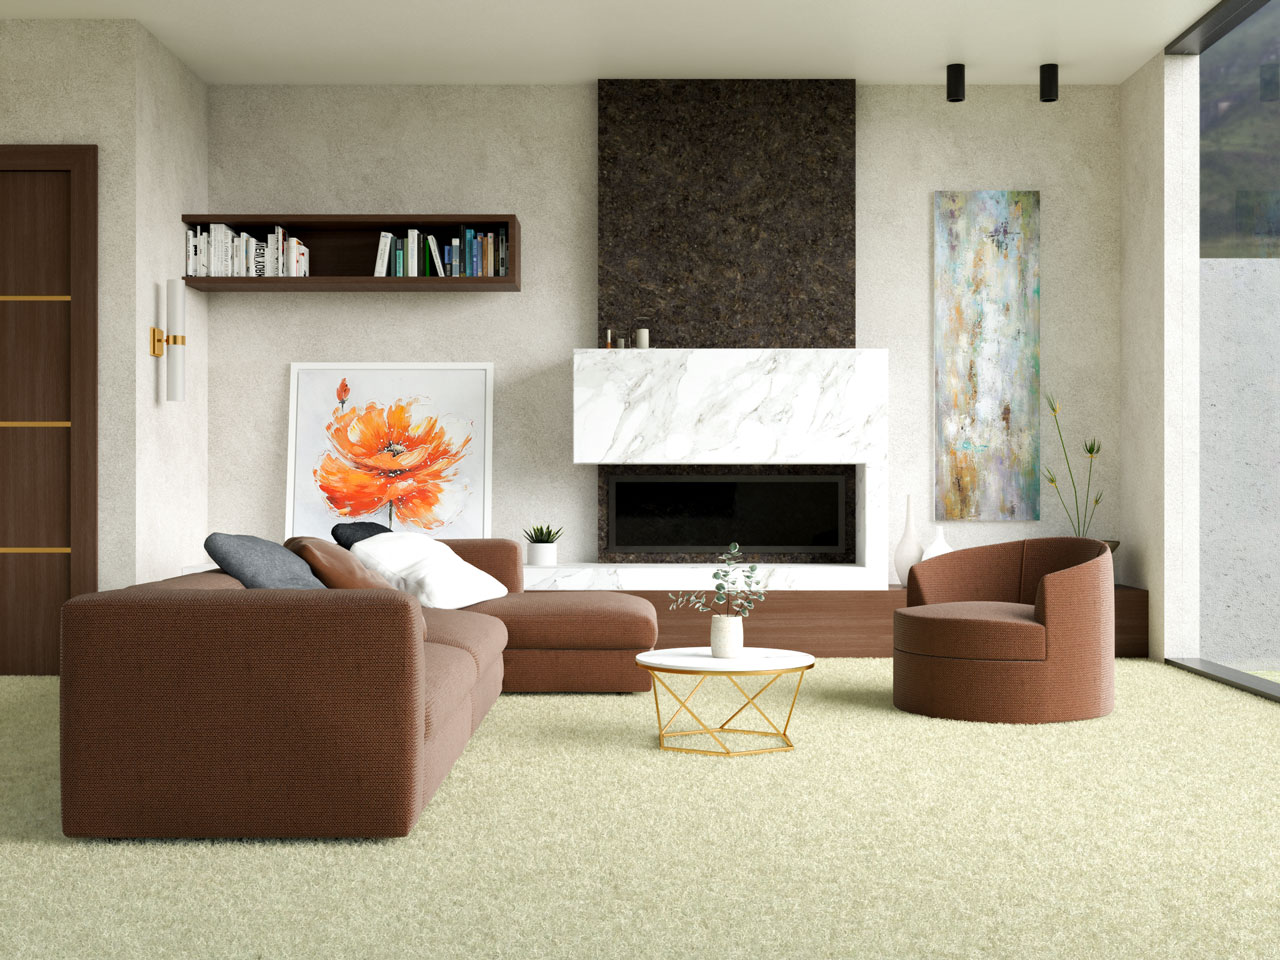 Pale yellow carpet and chocolate brown living room furniture